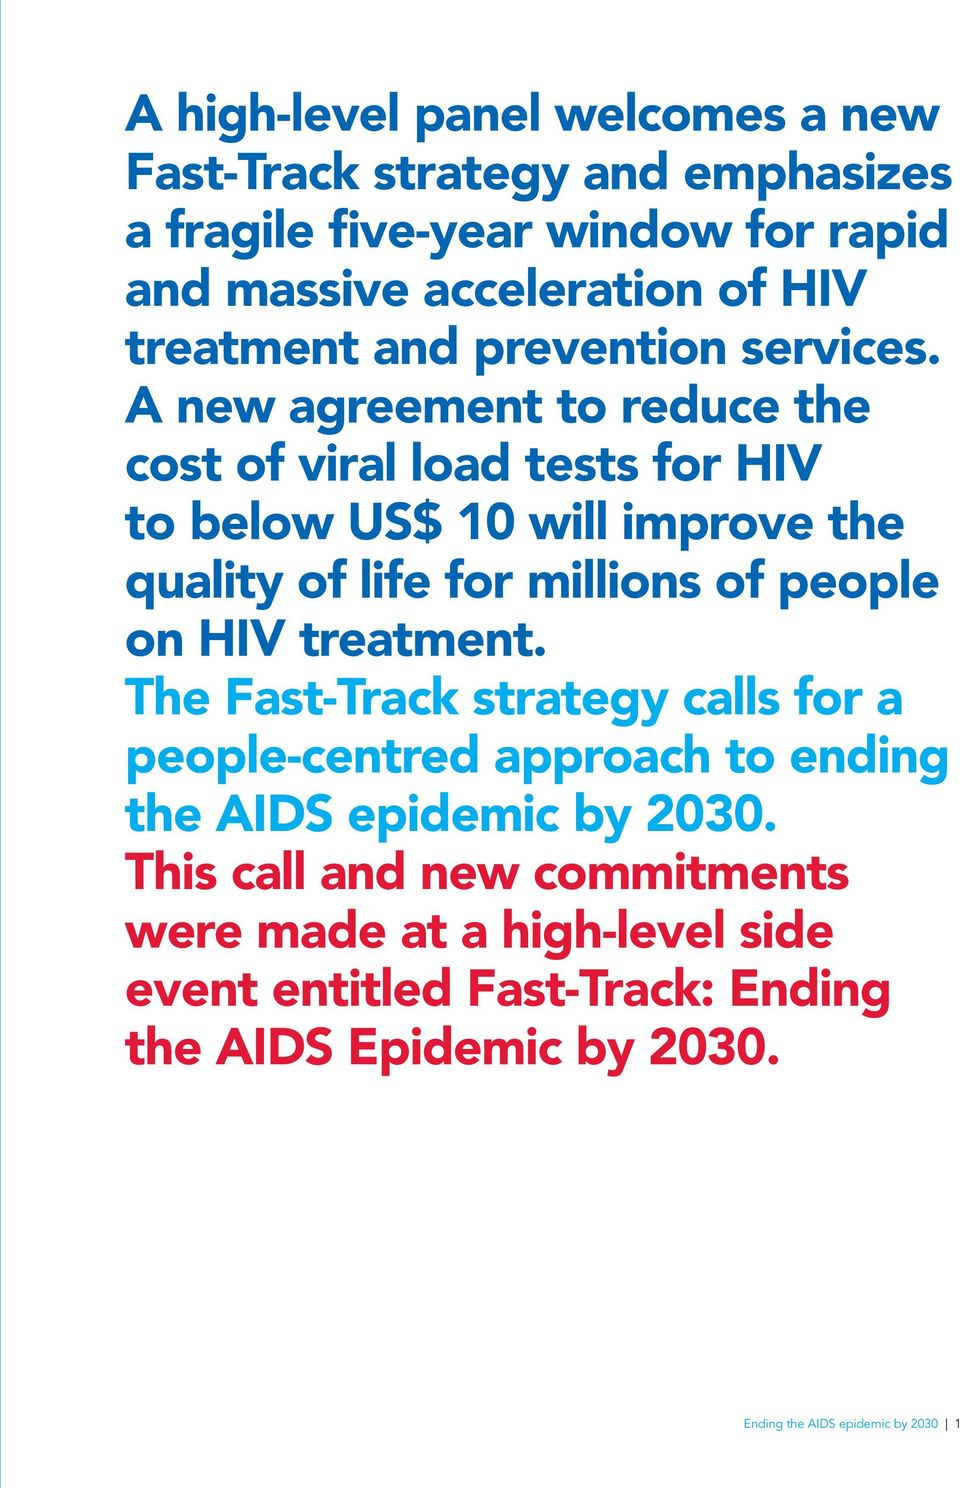 A new agreement to reduce the cost of viral load tests for HIV to below US$ 10 will improve the quality of life for millions of people on HIV